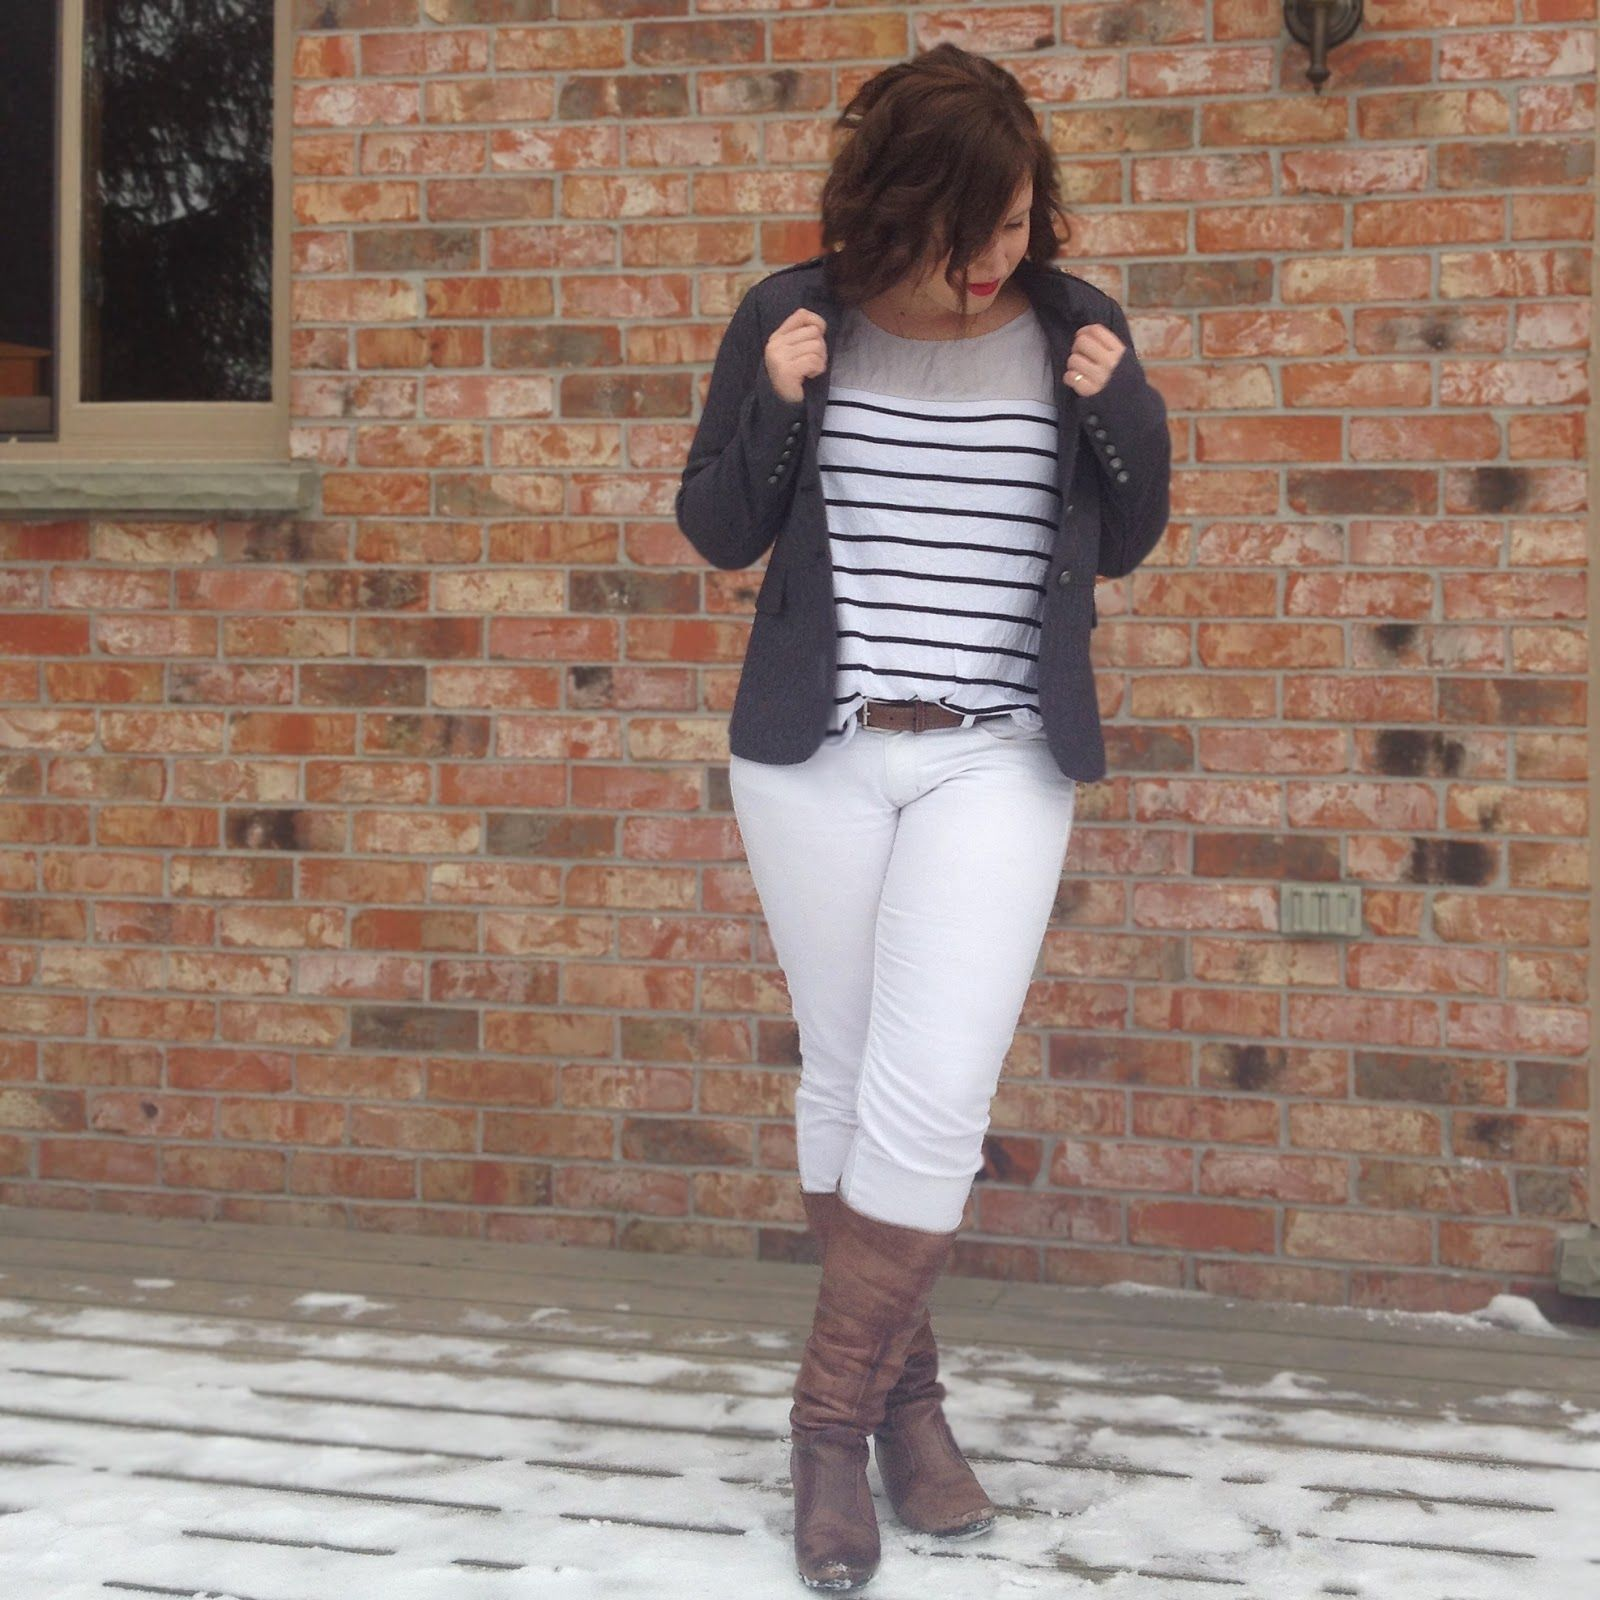 #winterwhite styling for #thriftstylethursday ft #AmericanEagle jeans, #OlsenEurope top, and #SmartSet blazer.